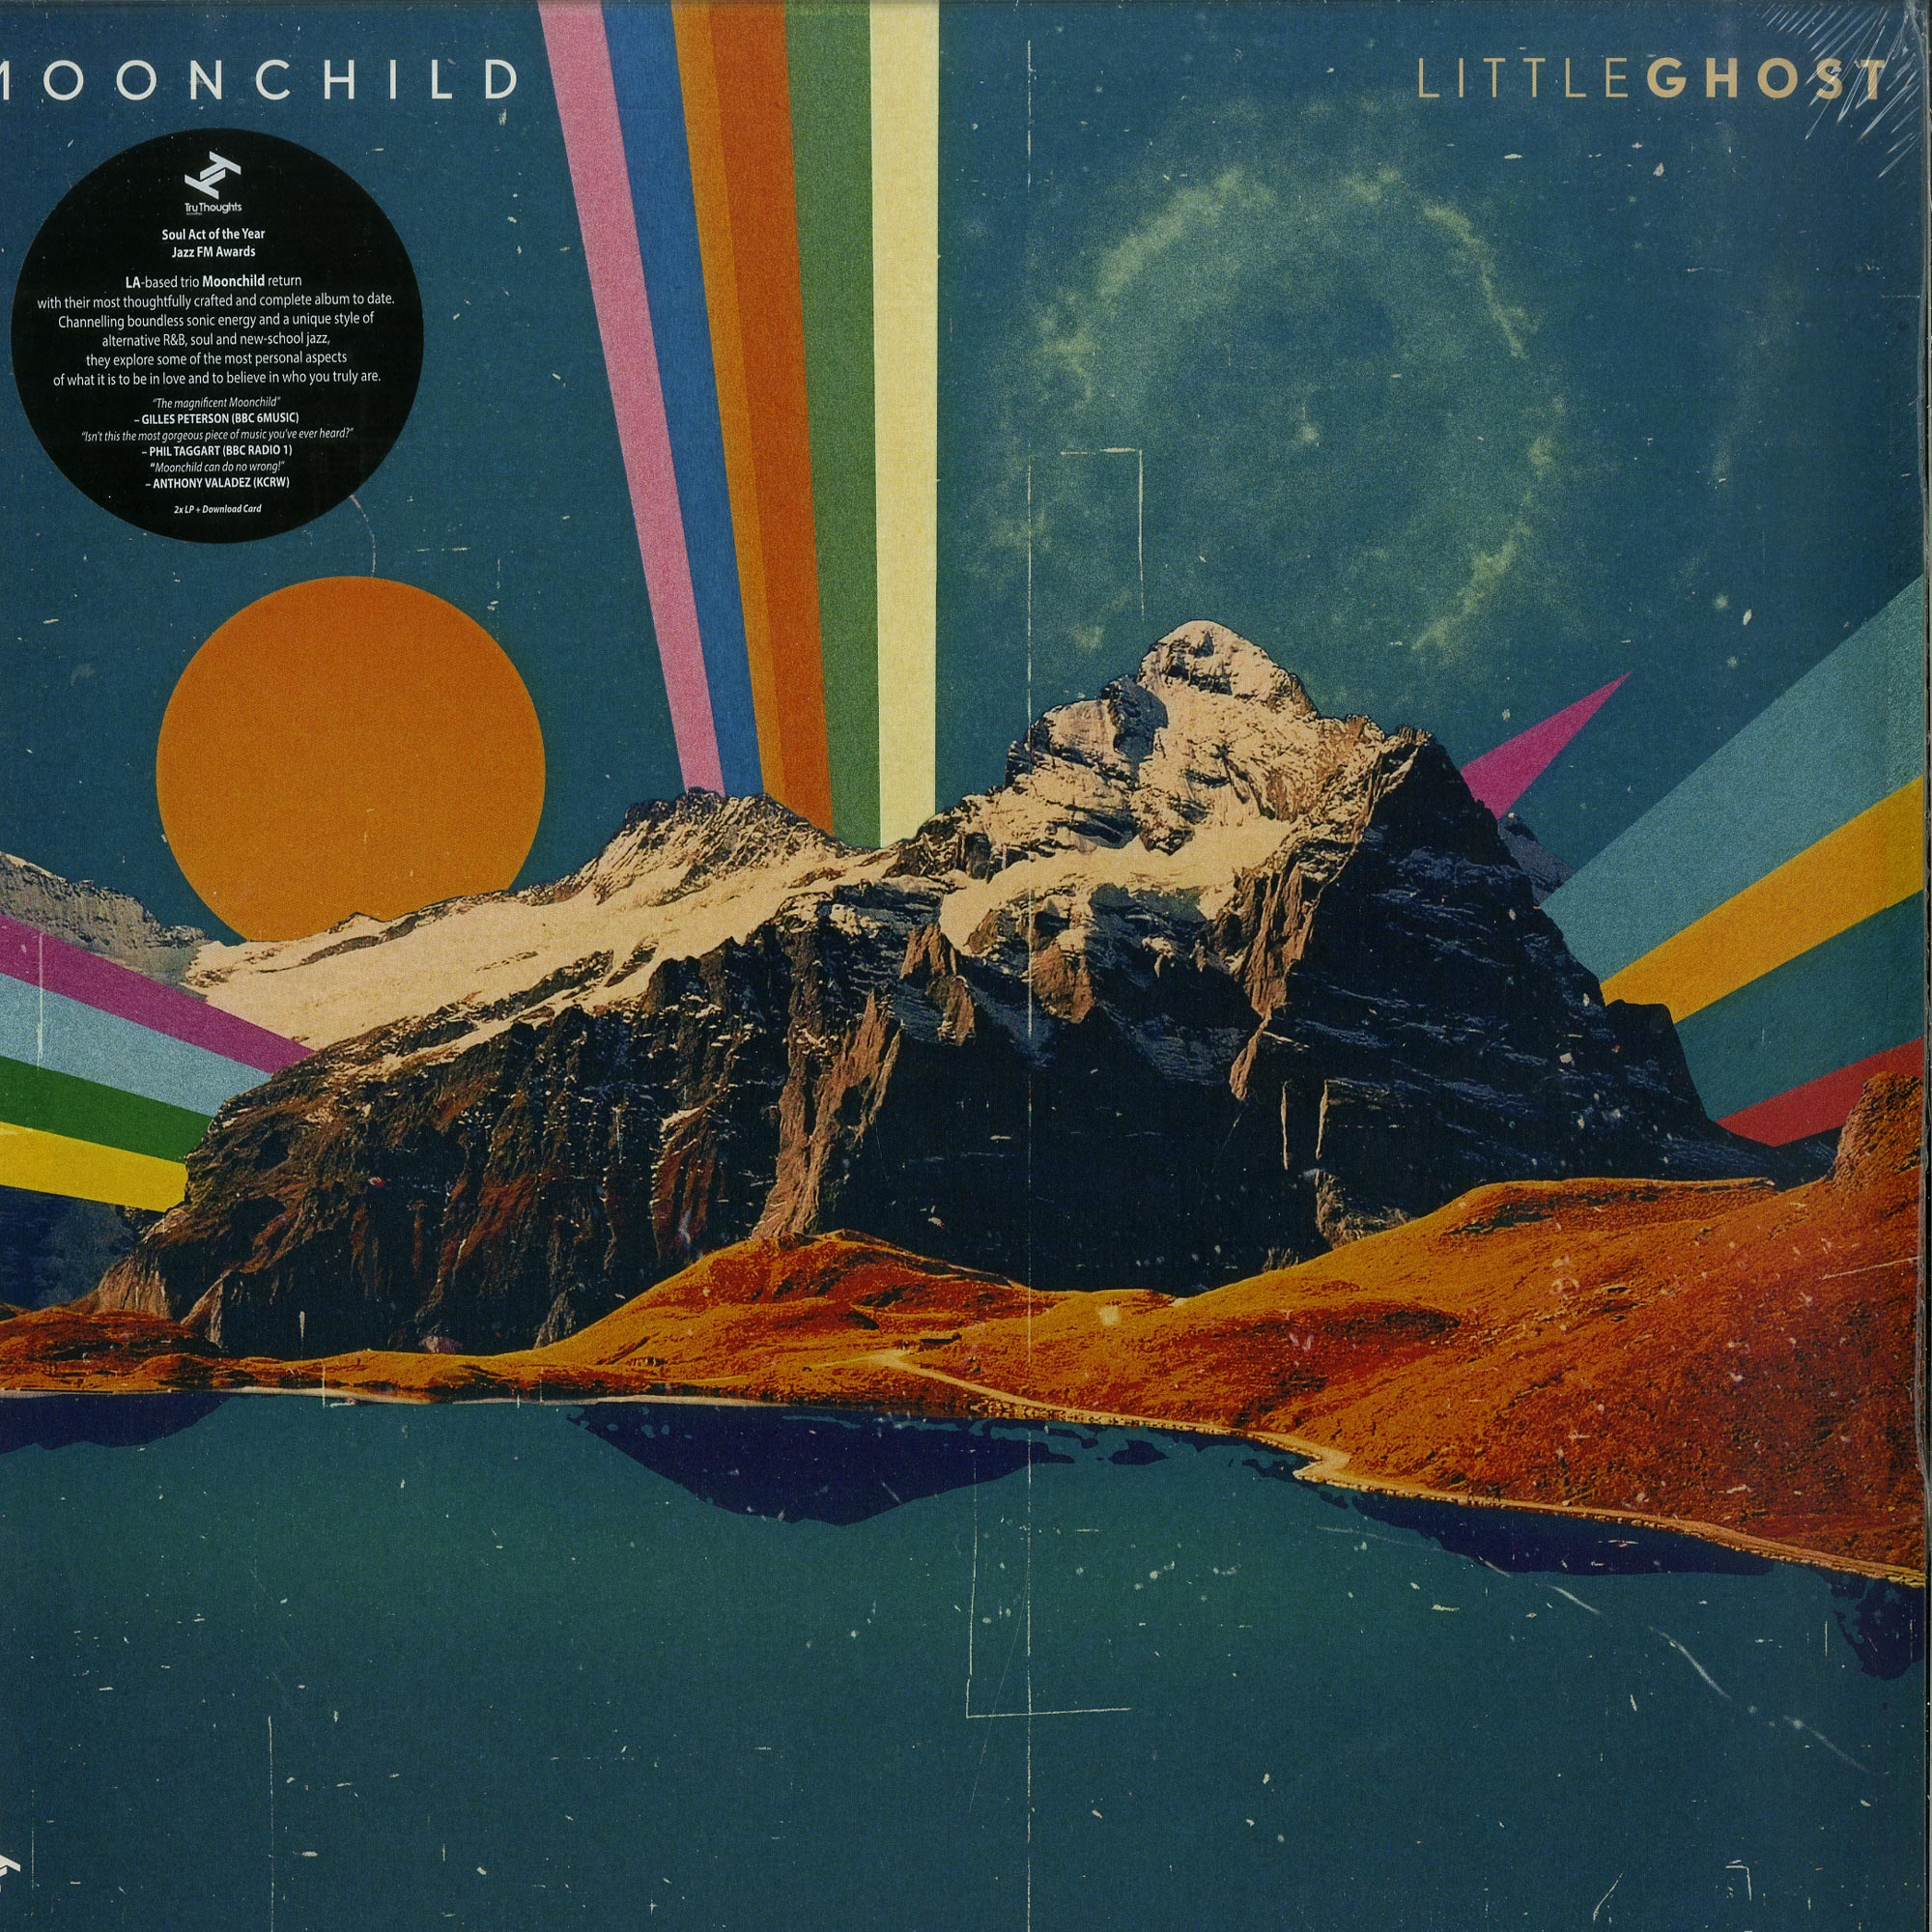 Moonchild - LITTLE GHOST